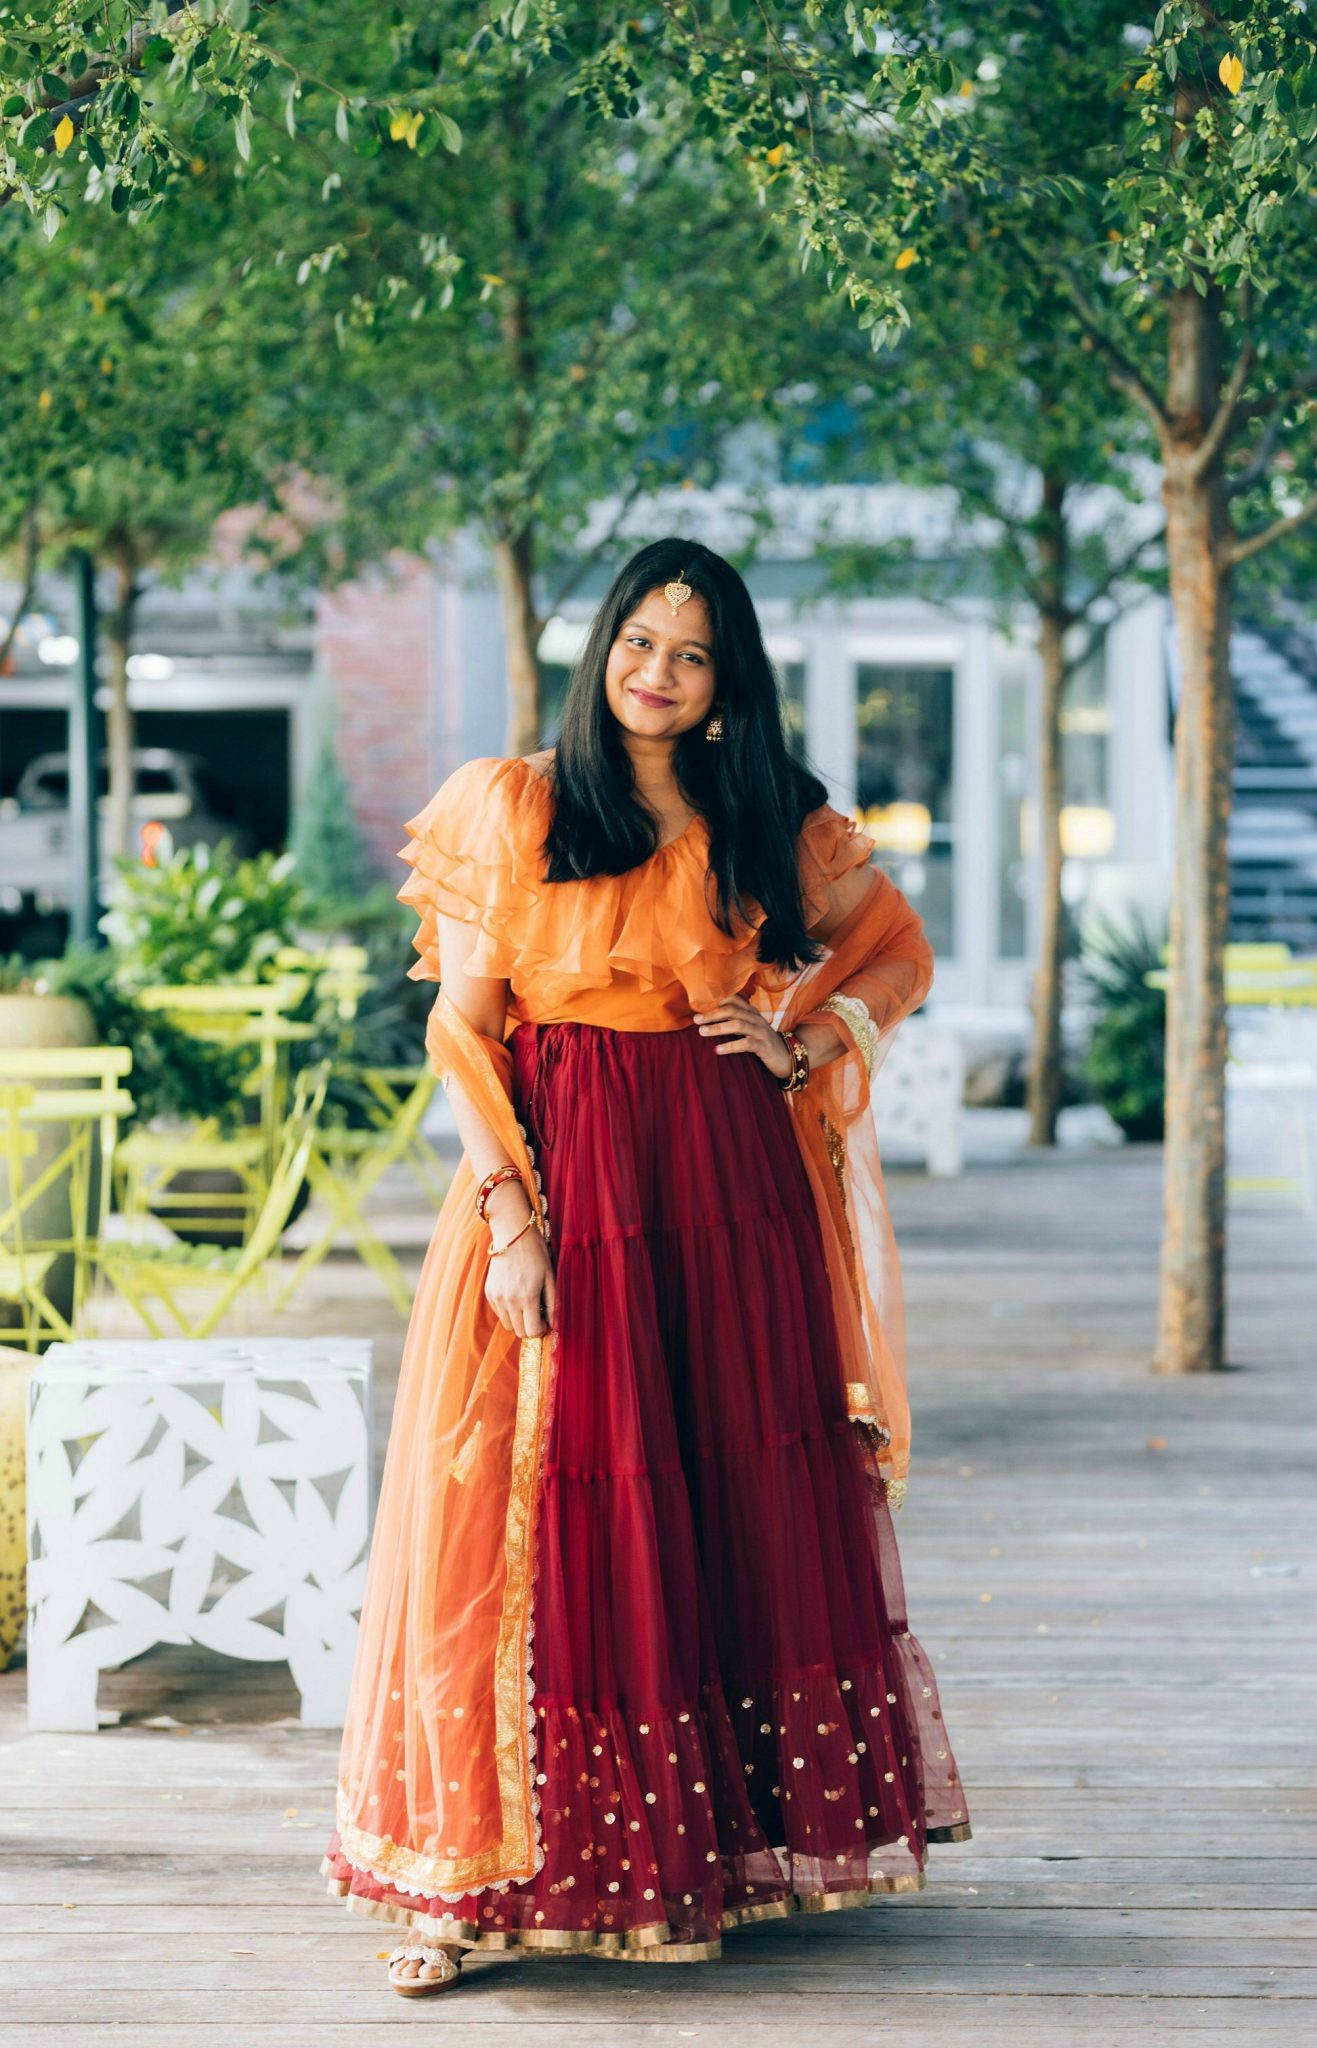 5 Cute Diwali Outfits to Wear for your Diwali Party, Diwali look book featured by top US modest fashion blog, Dreaming Loud.